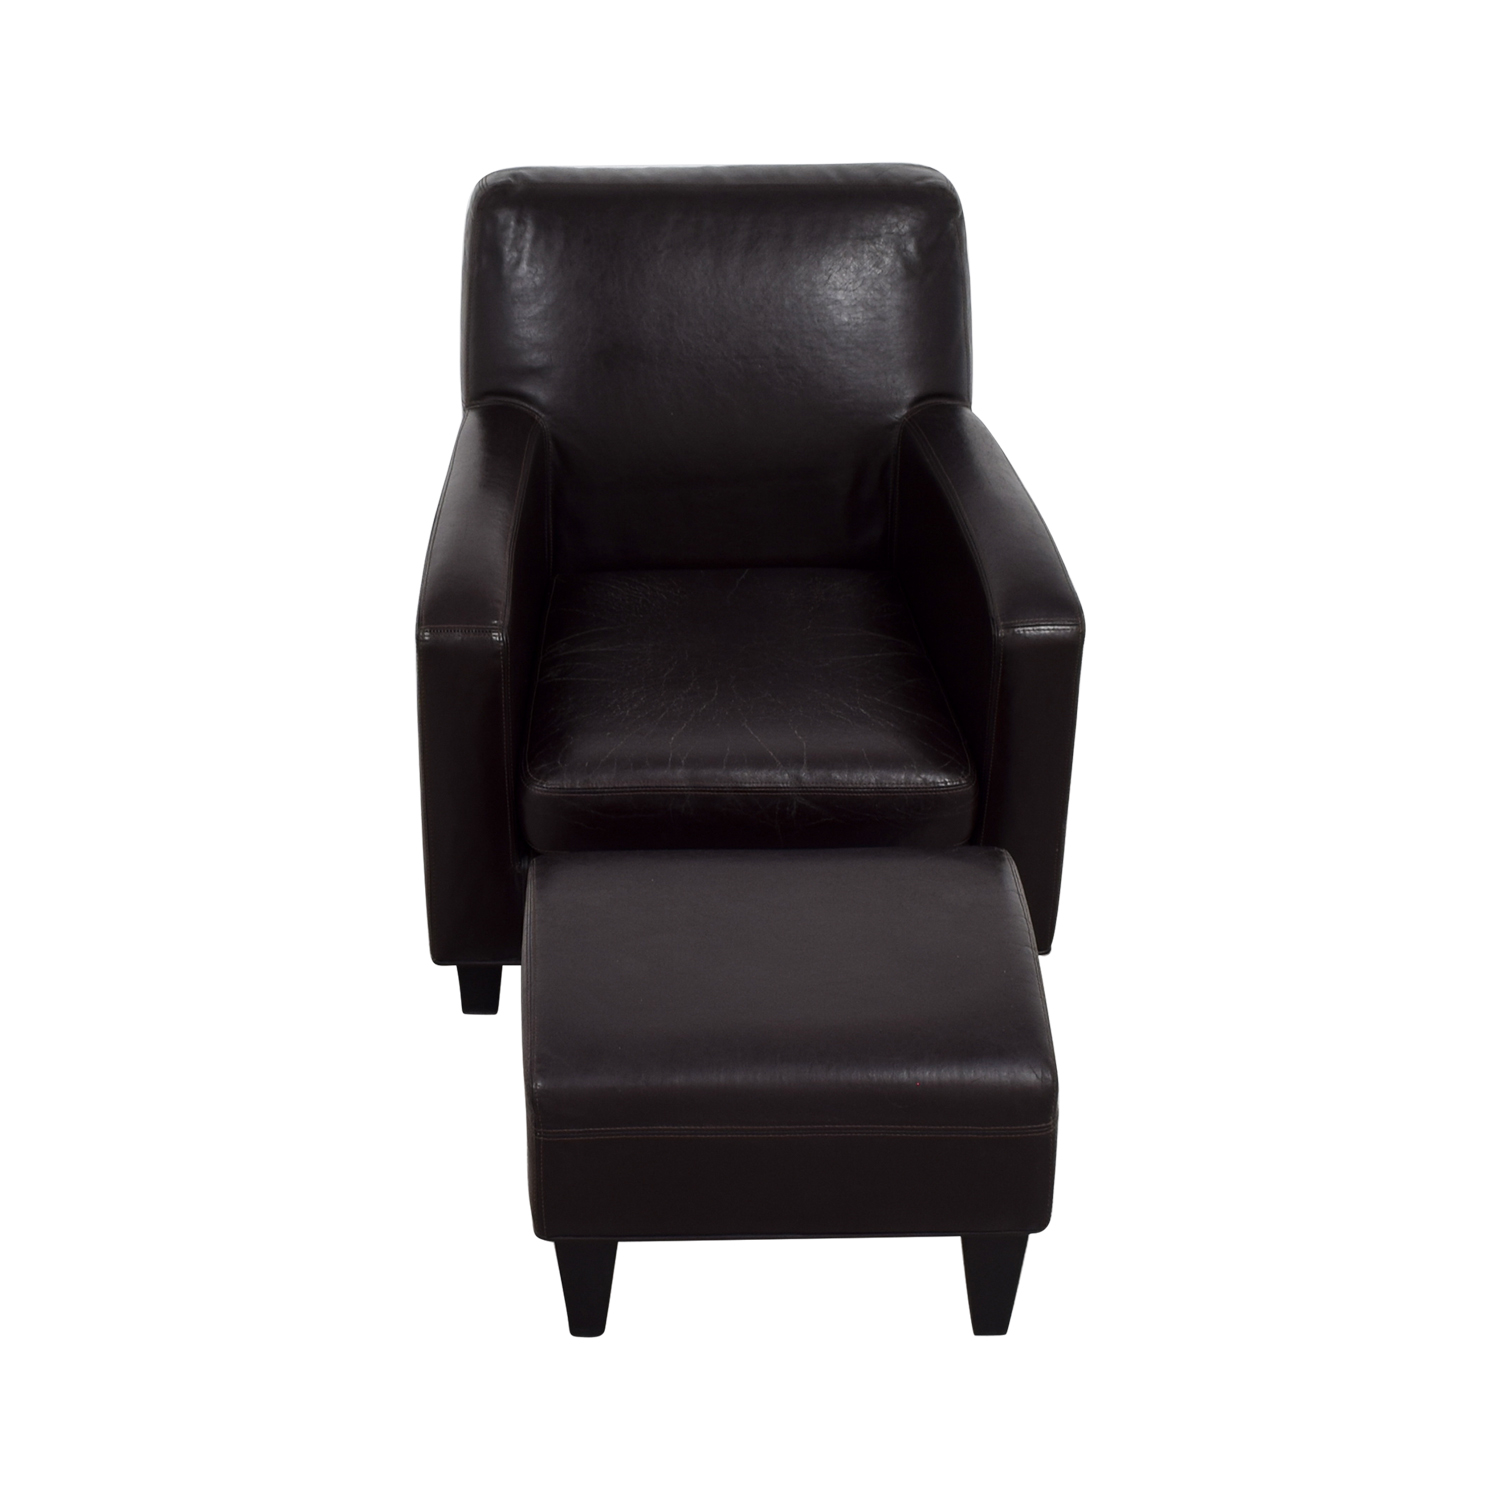 black leather chair ikea lower back support for office accent chairs used sale